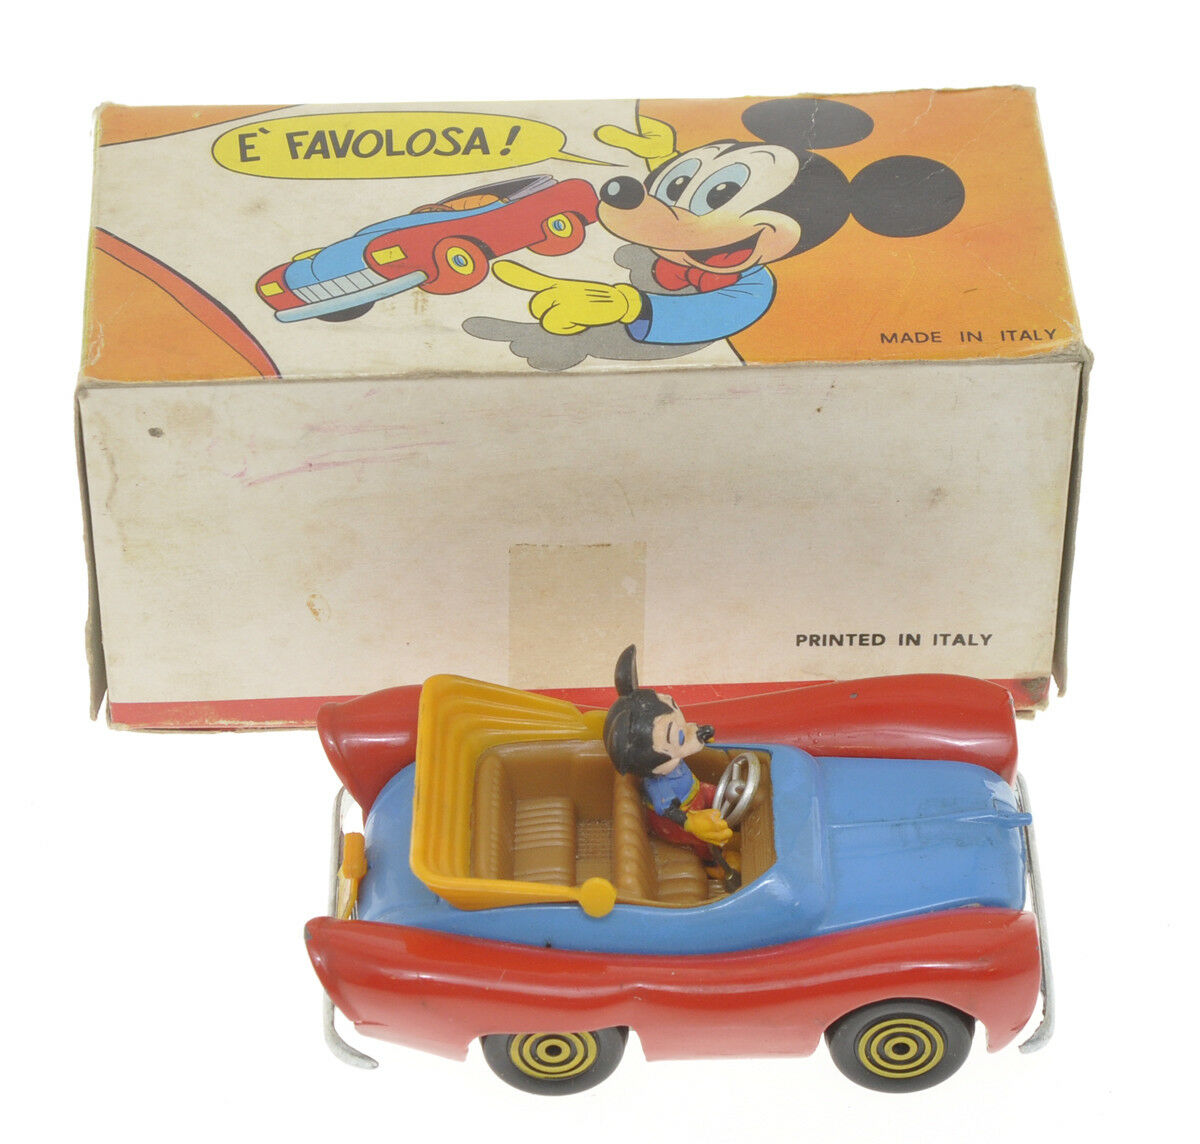 Politoys Topolino, made in Italy,   version     old box, RARE | Grandes Variétés